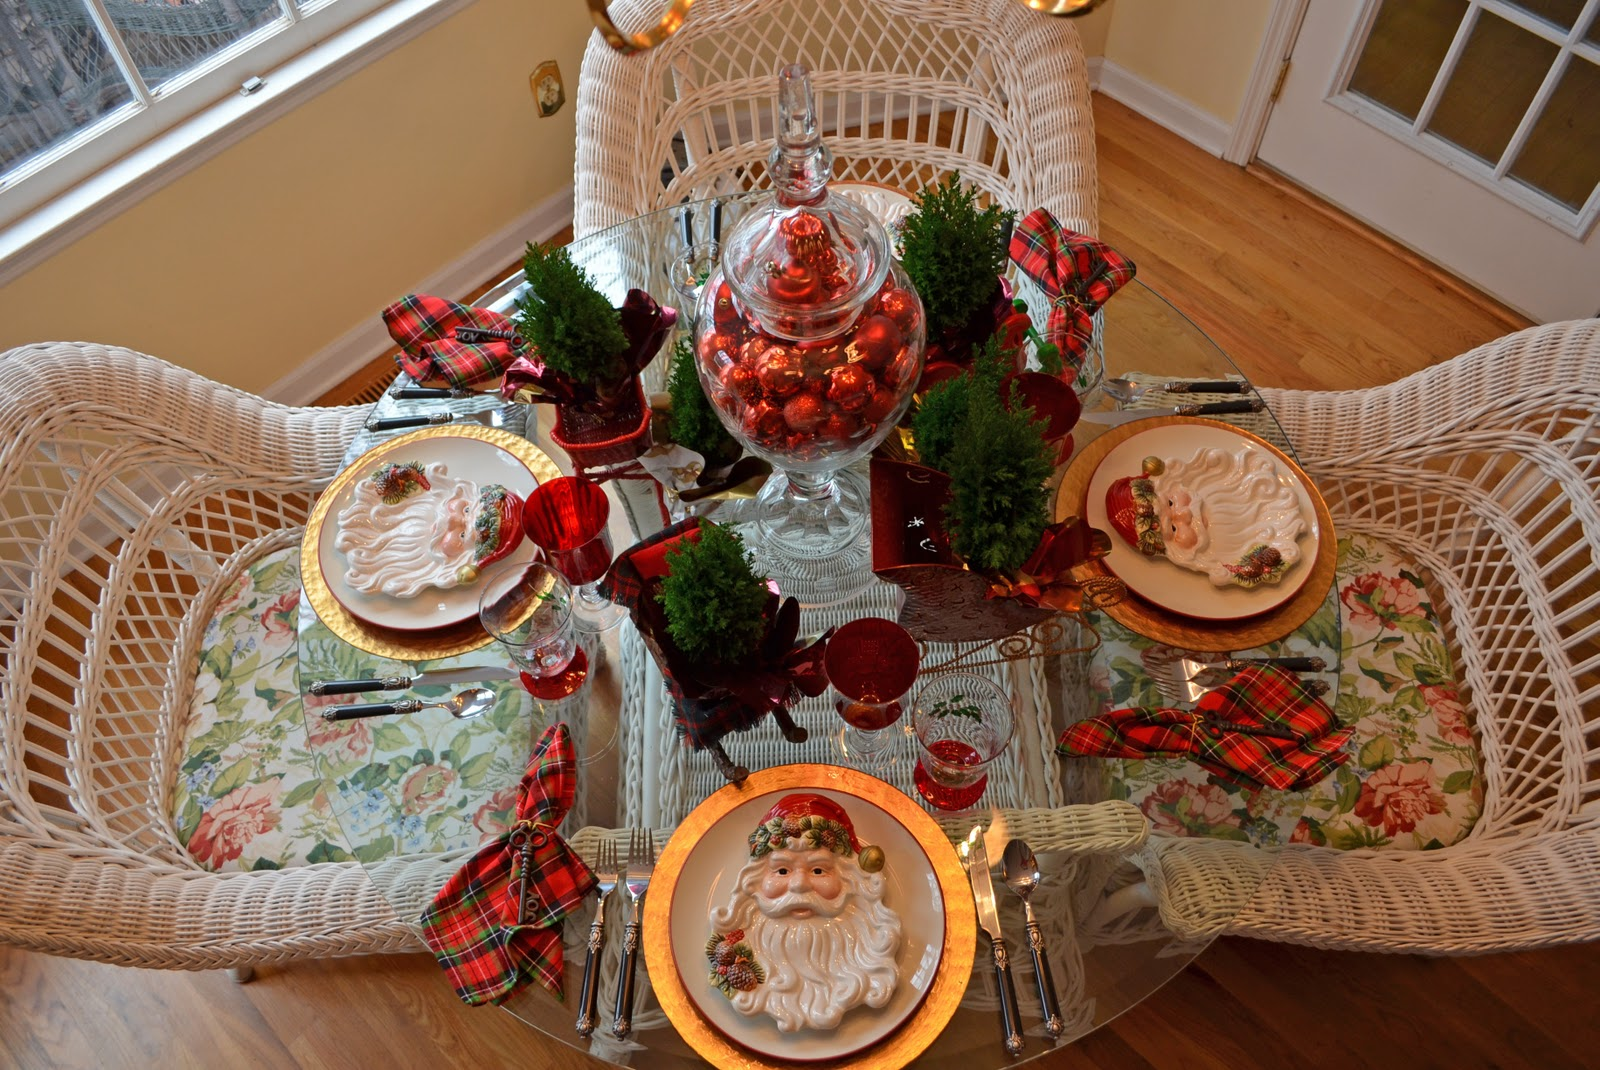 Santa Themed Tablescape With Santa Plates And A Sleigh. Christmas Decorations With Pallets. How To Decorate A Christmas Tree Beautifully. Christmas Lights For Sale Ottawa. Christmas Decorations Model Houses. Homemade Christmas Memorial Ornaments. Christmas Decorations Ideas 2016. Contemporary Silver Christmas Decorations. Christmas Lights For Sale Walmart